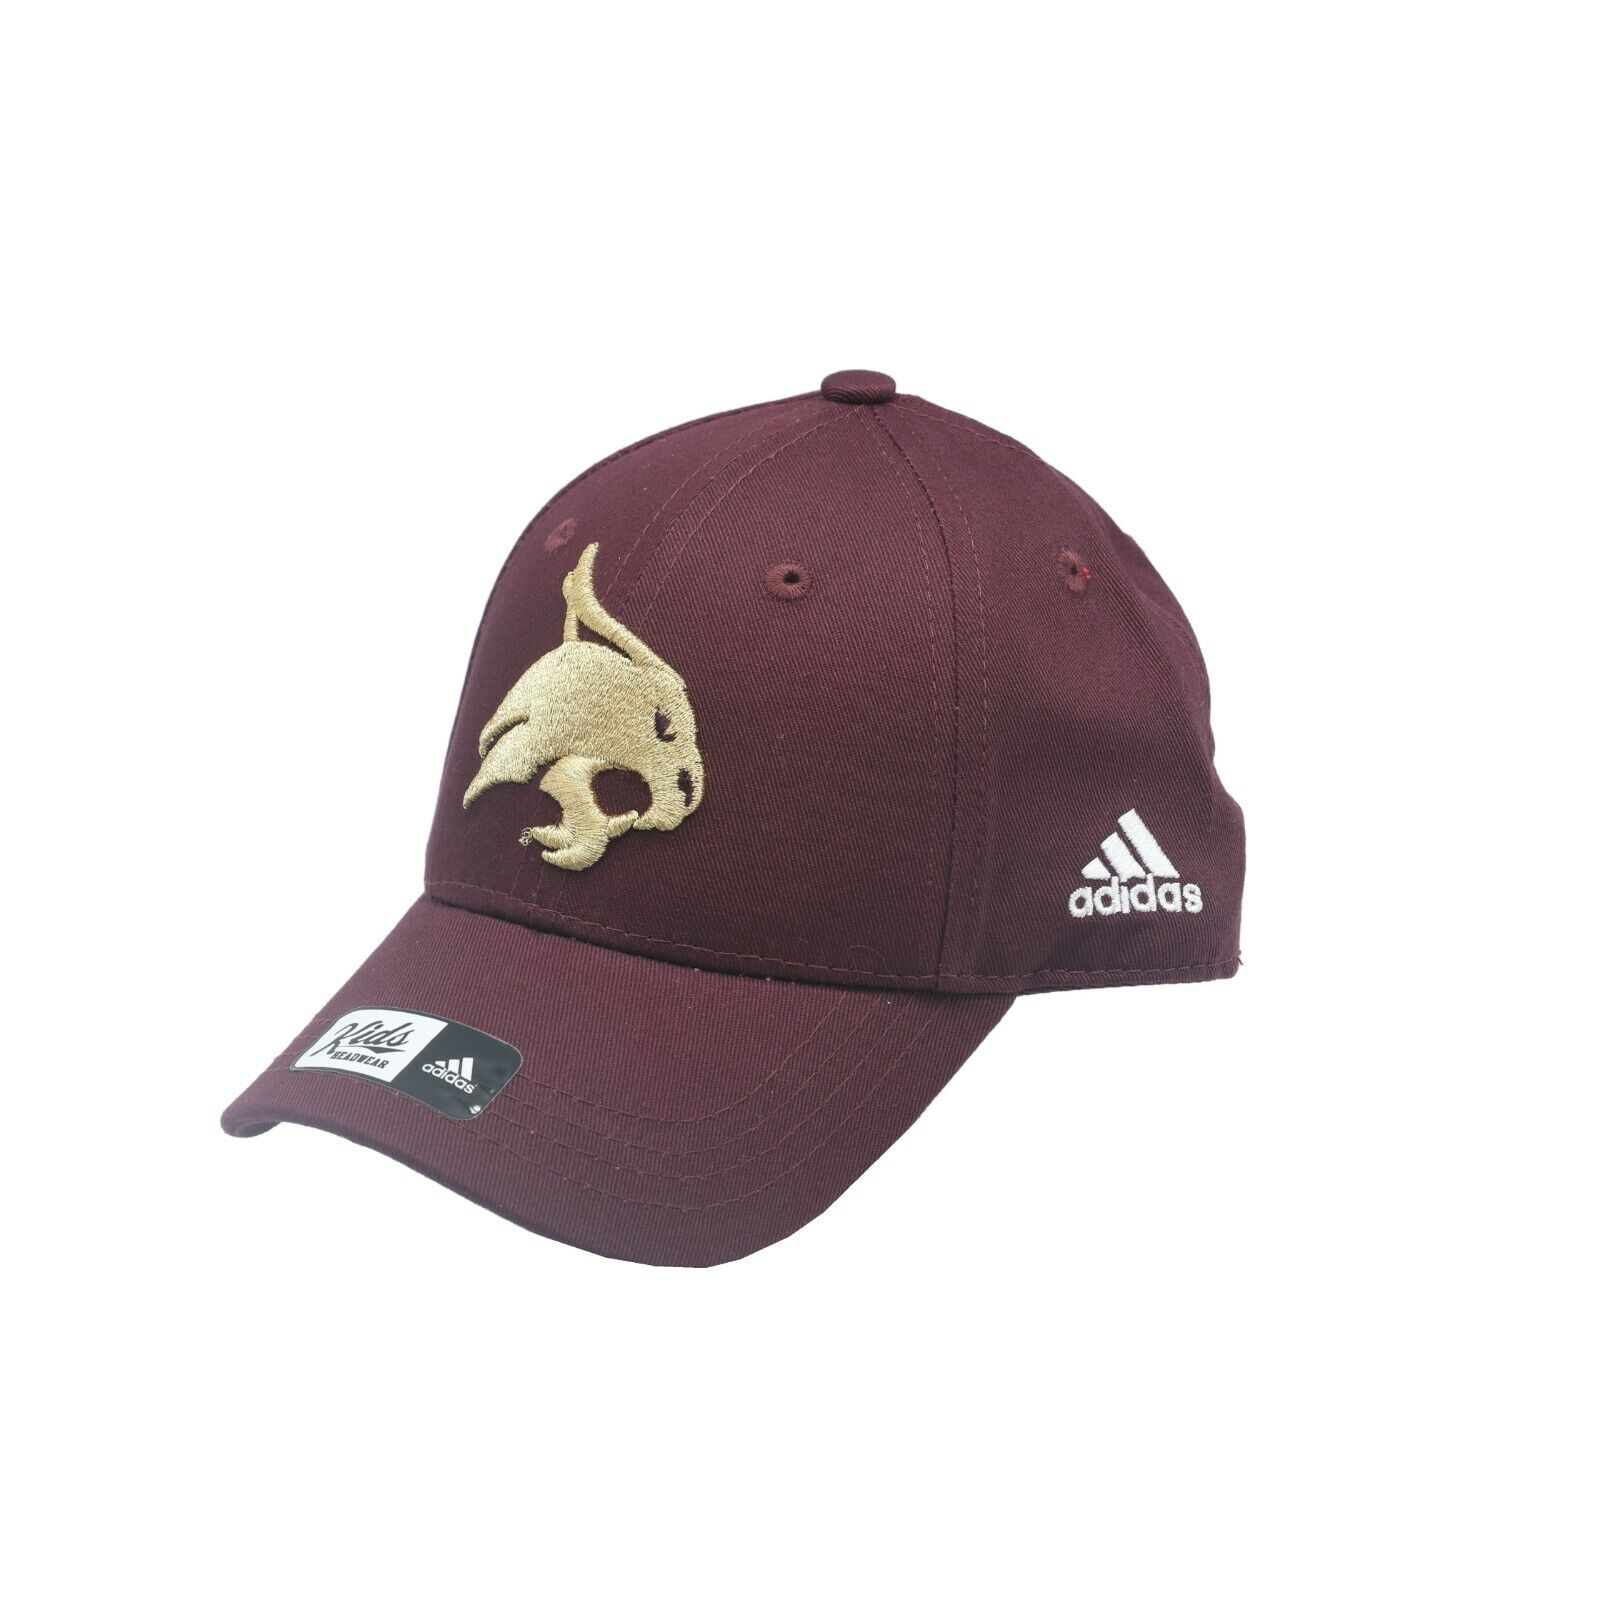 Texas State Bobcats Official NCAA Adidas Infant Toddler Size Adjustable Hat  Cap 85136b79c249